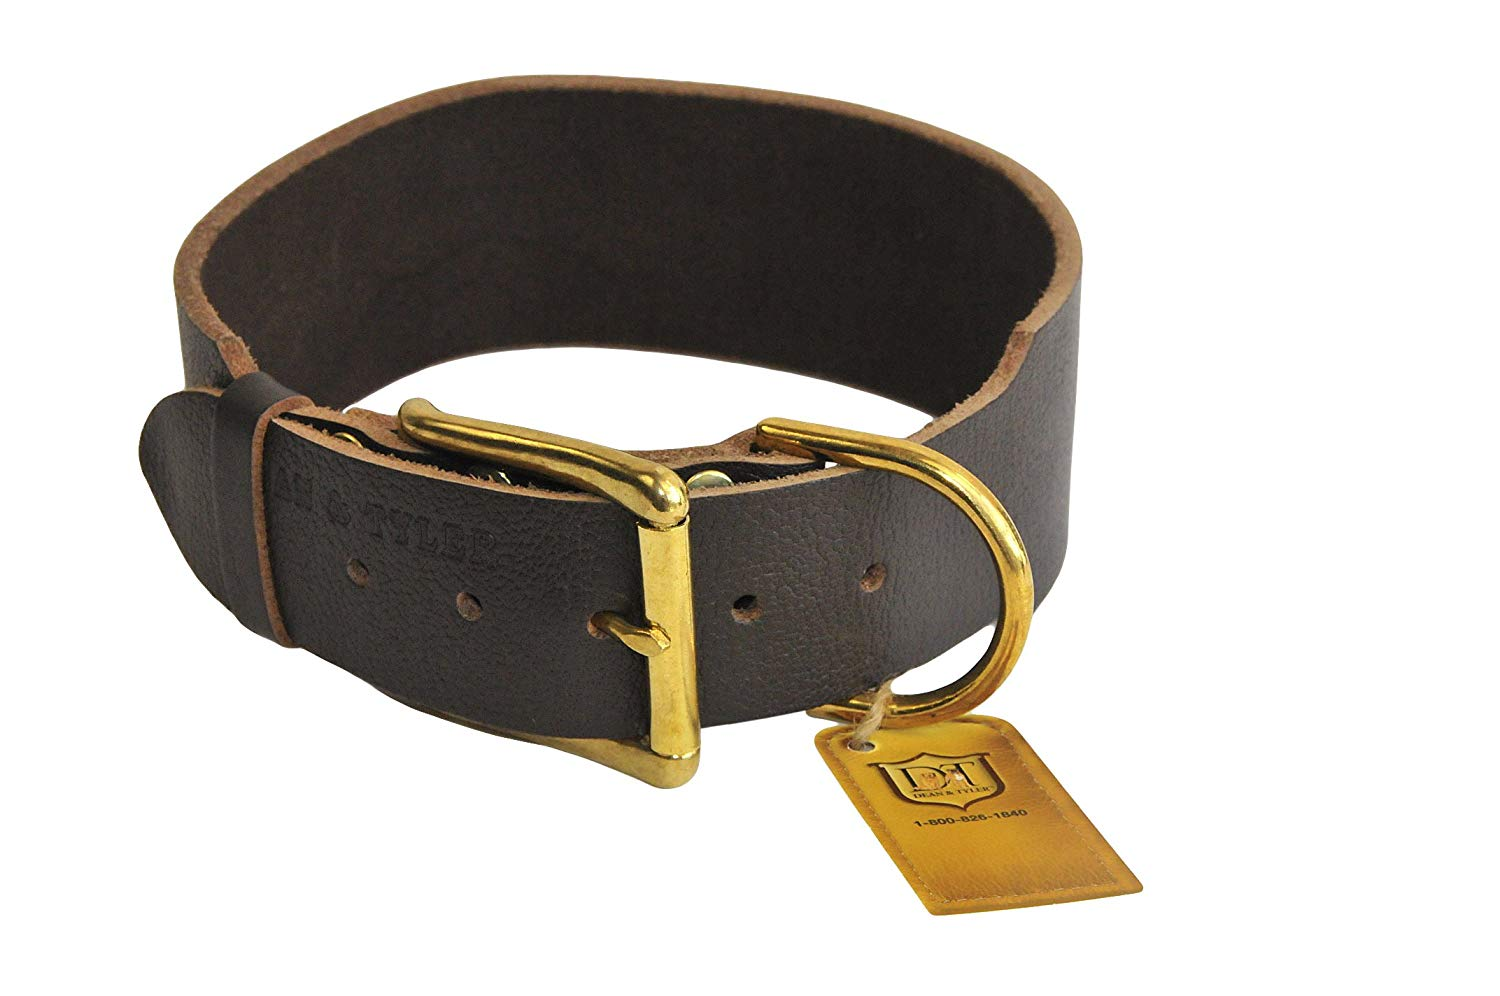 Dean and Tyler B and B, Basic Leather Dog Collar with Solid Brass Hardware - Brown - Size 18-Inch by 1-3/4-Inch - Fits Neck 16-Inch to 20-Inch